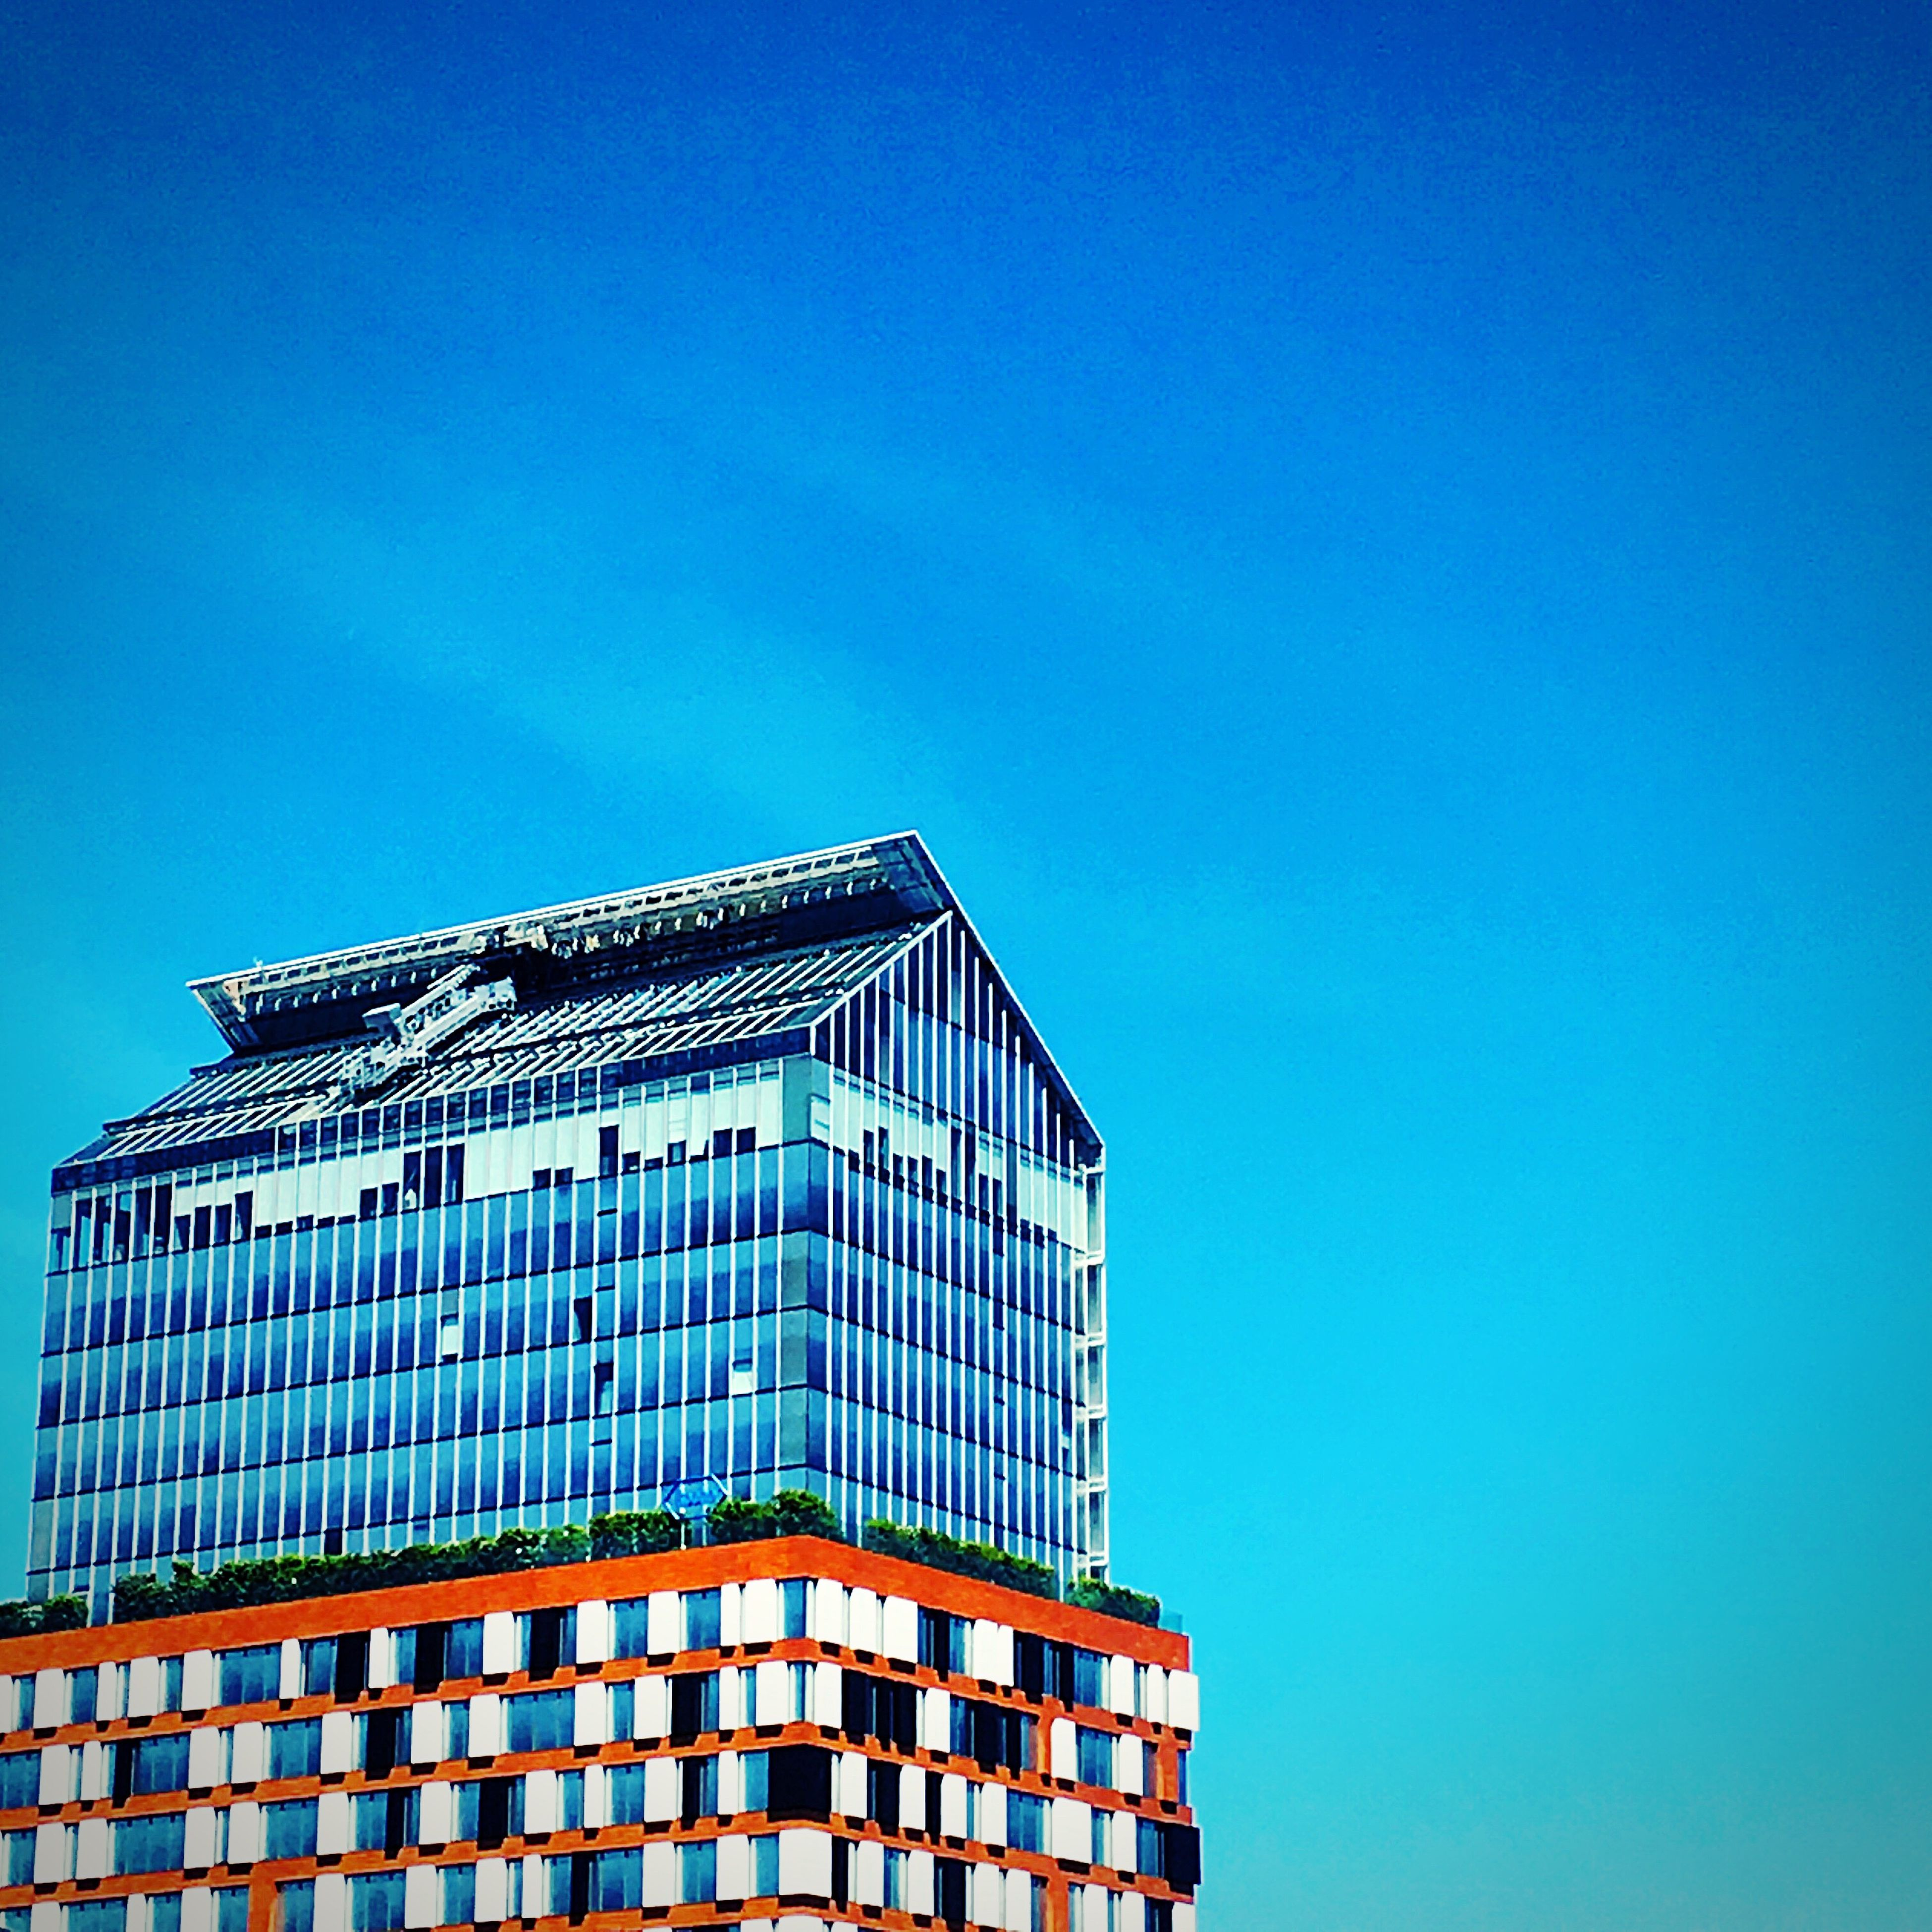 architecture, building exterior, built structure, clear sky, blue, low angle view, copy space, building, city, modern, window, office building, tall - high, outdoors, day, residential structure, no people, tower, high section, residential building